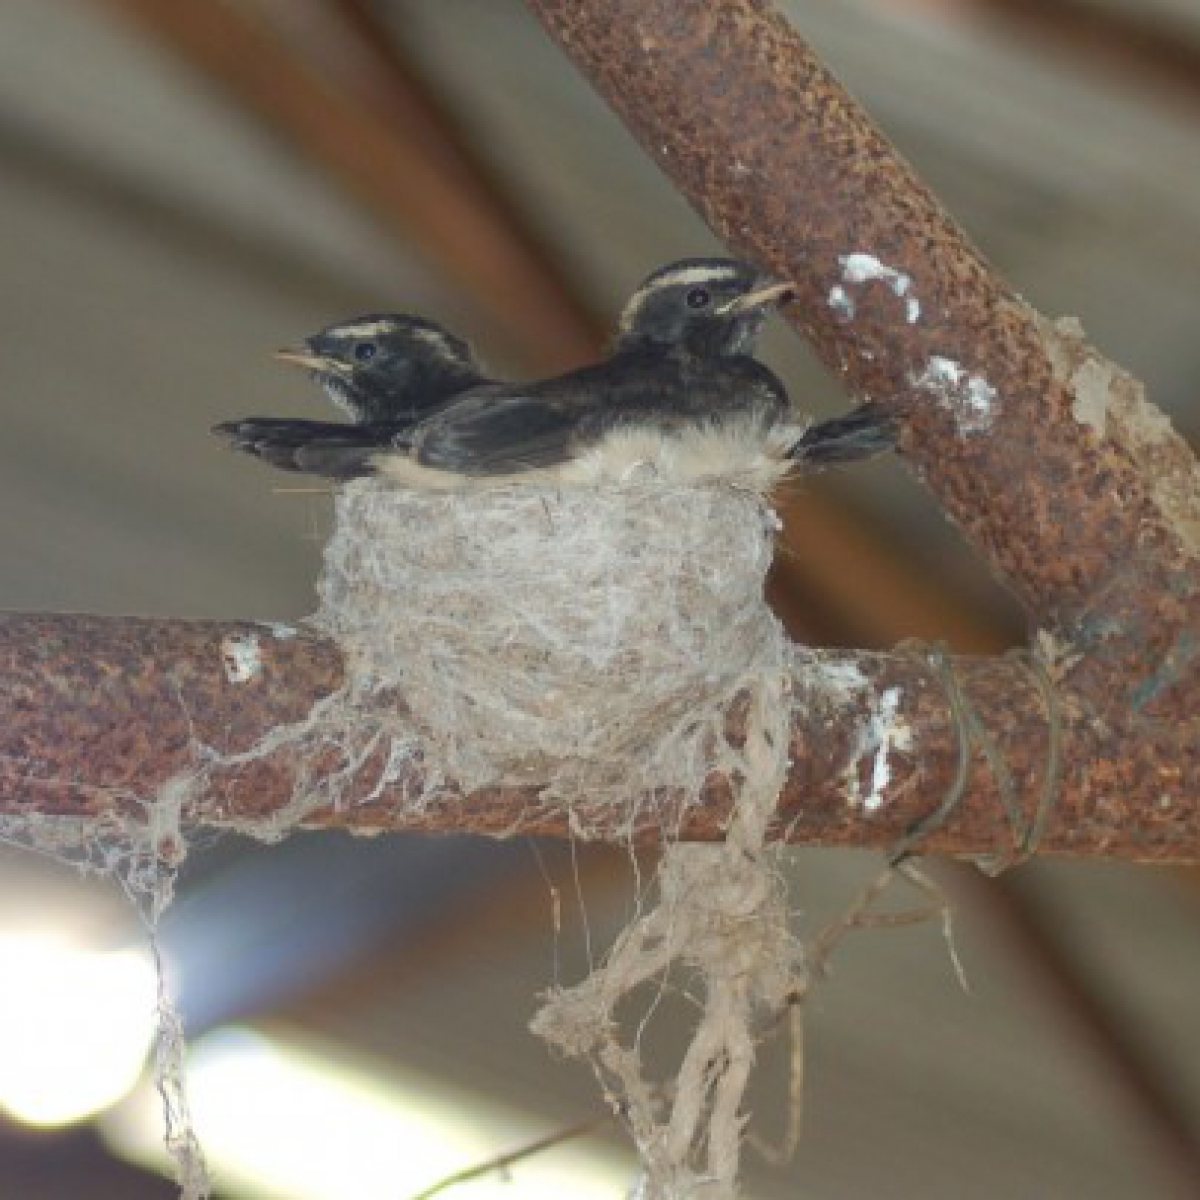 624 Willie Wagtail chicks on nest